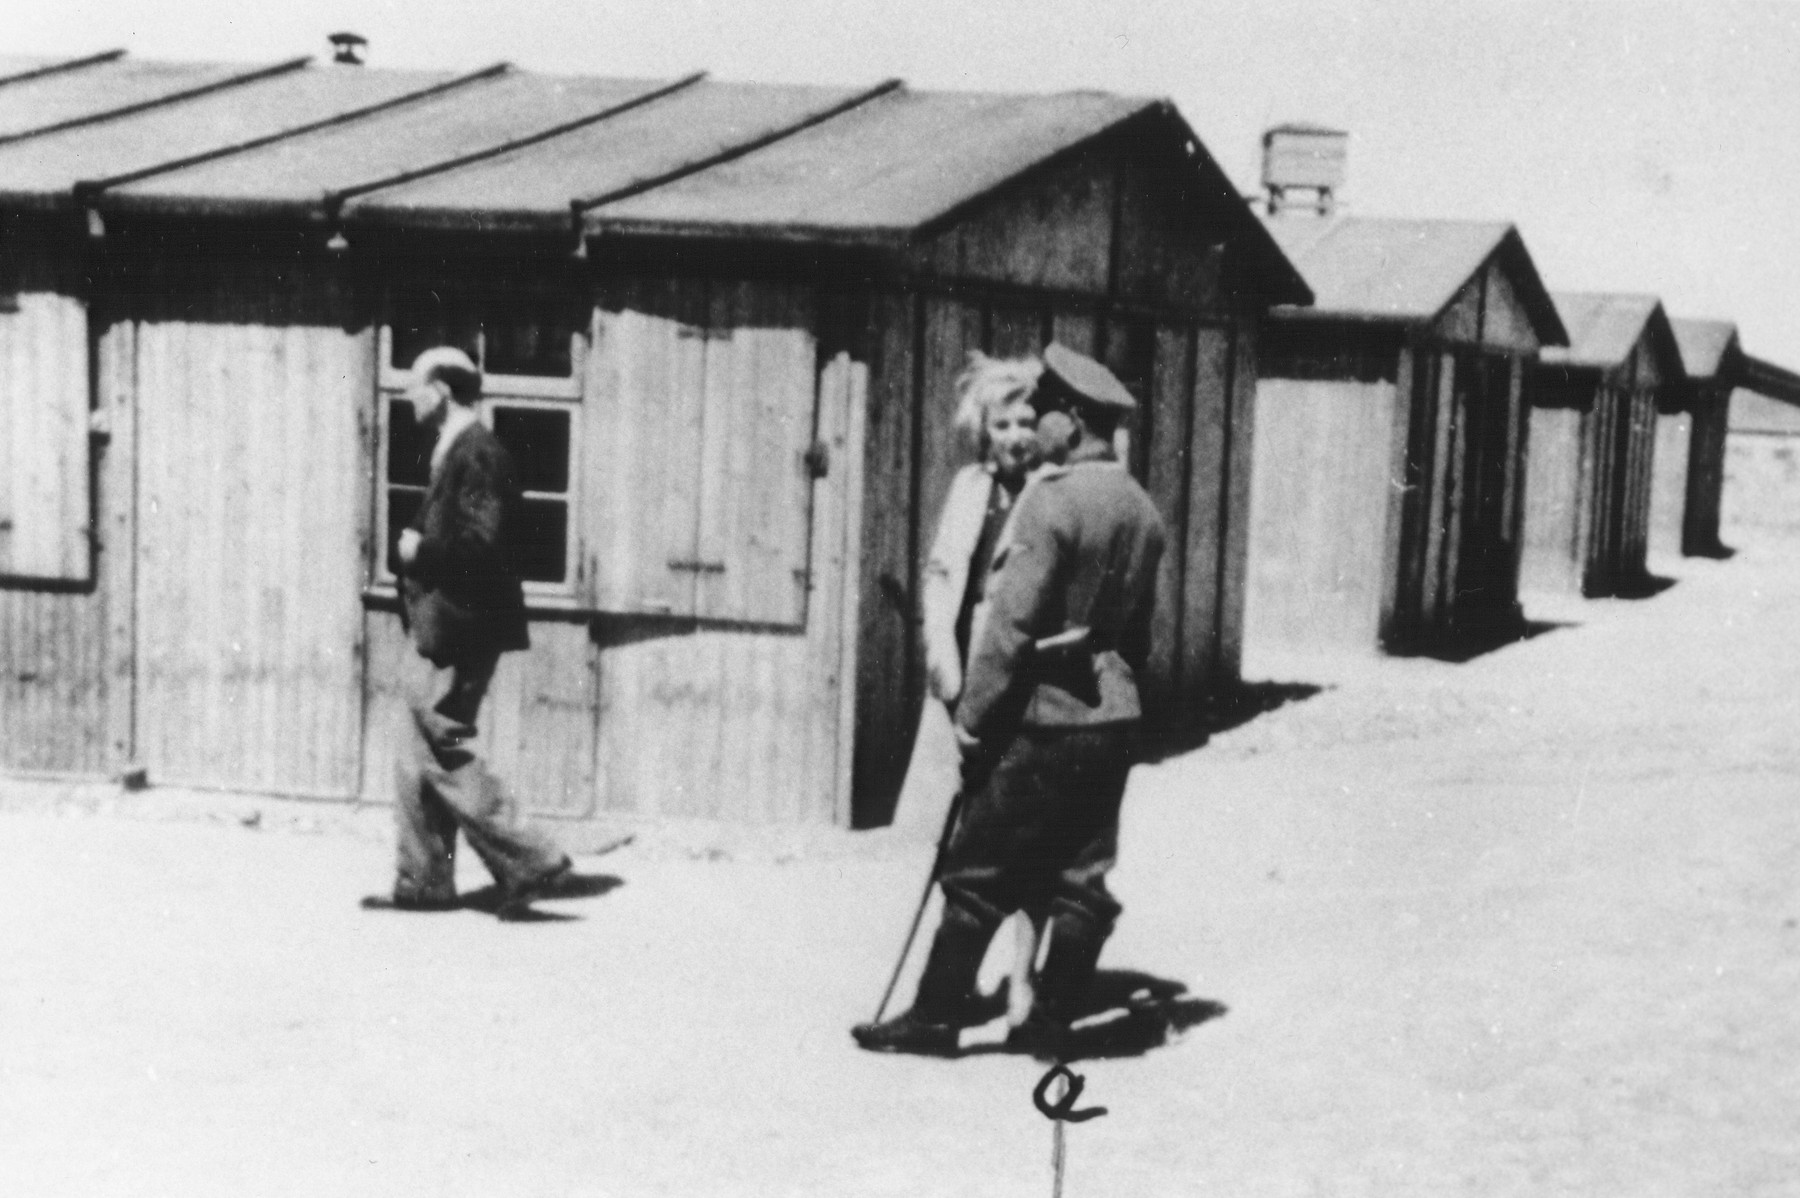 An SS officer identified as Lehnert converses with a woman on the main street of the residential camp in Trawniki.